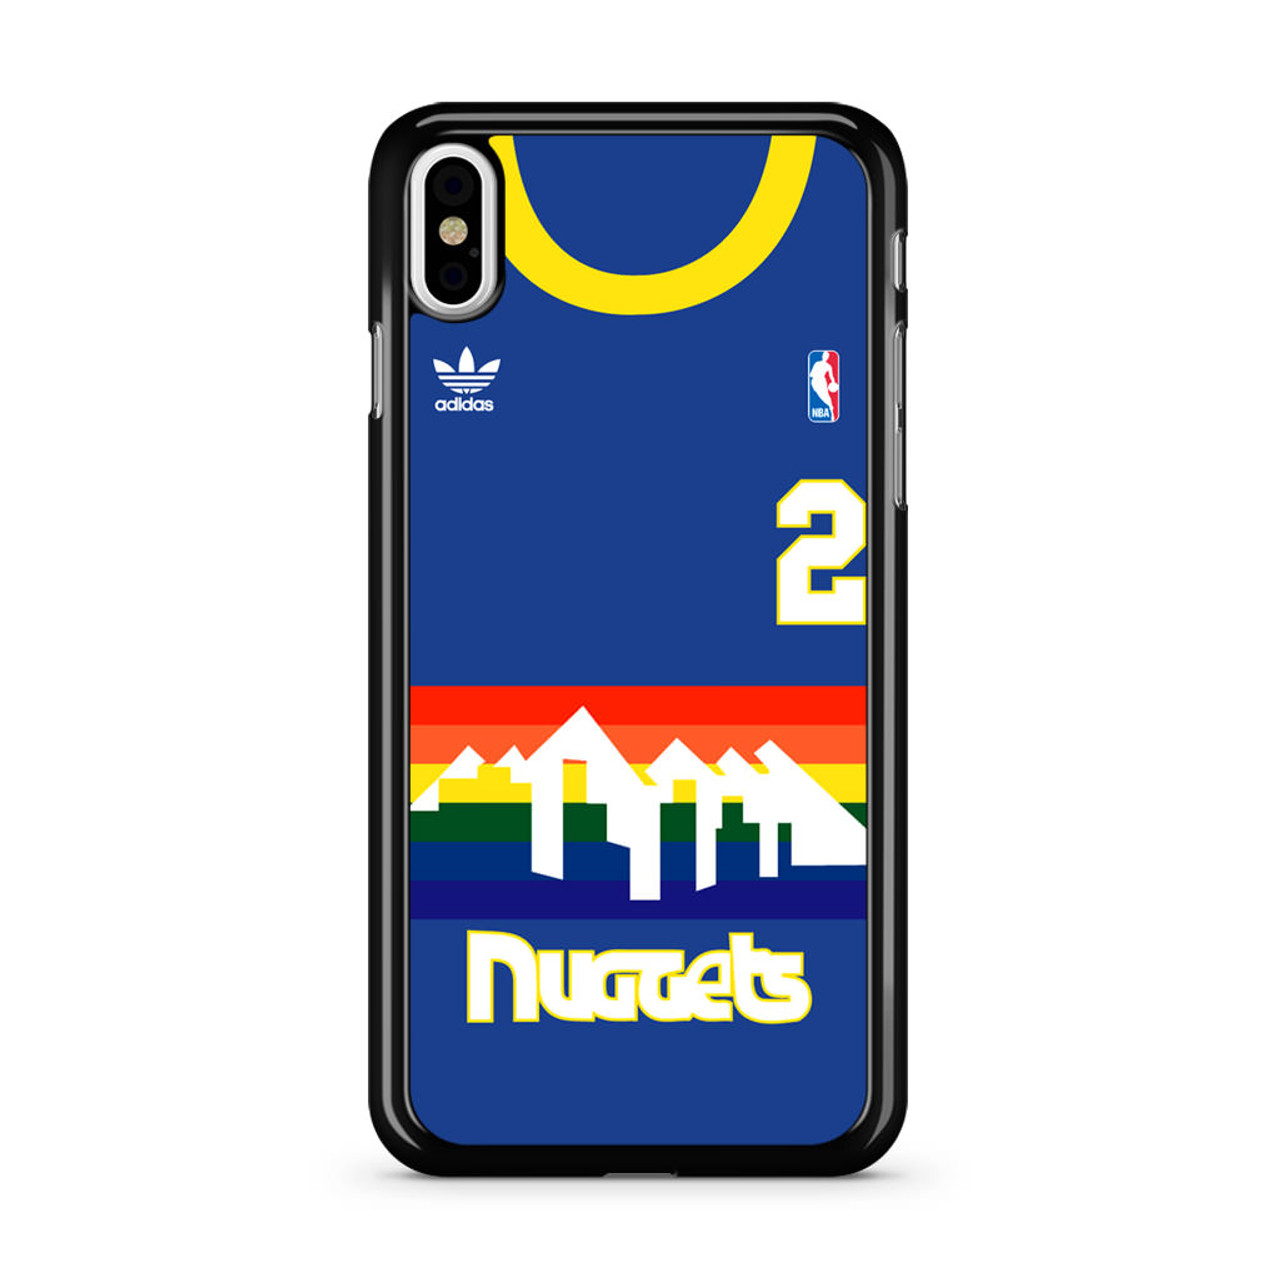 size 40 6840c b600d Denver Nuggets Alex English Jersey iPhone X Case